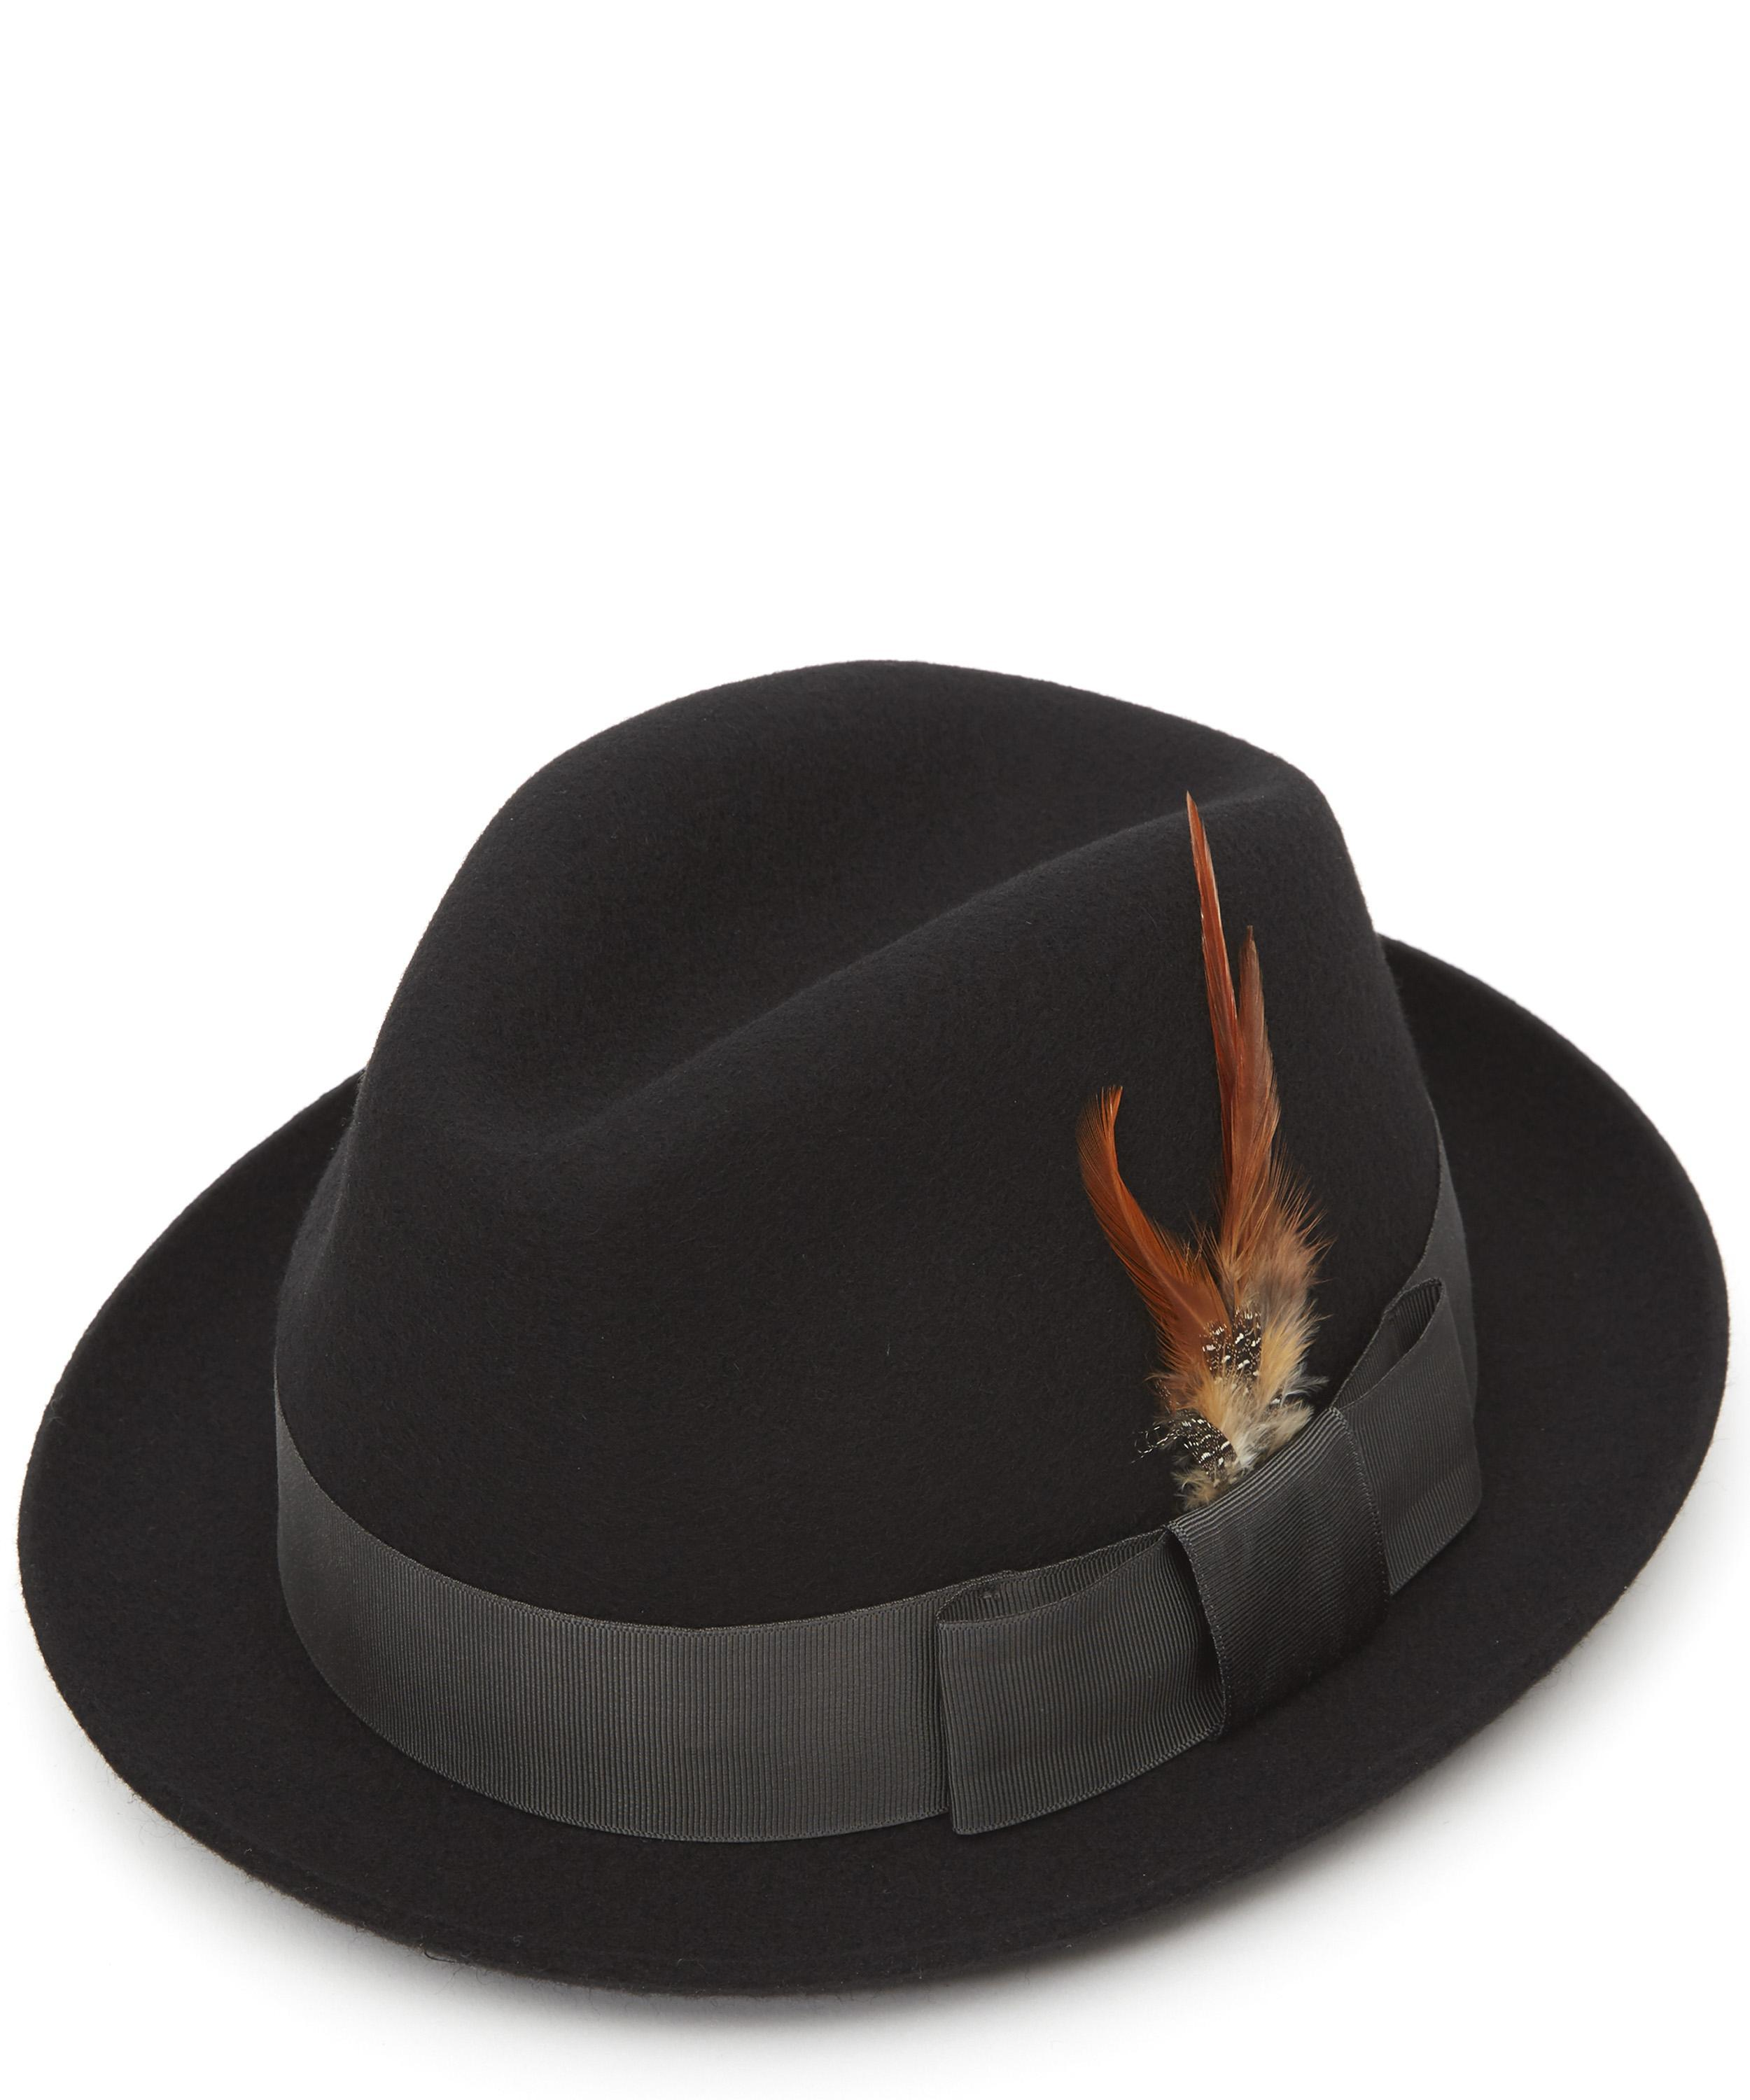 96a81e52685739 Paul Smith Wool-felt Feather Trilby Hat in Black for Men - Lyst